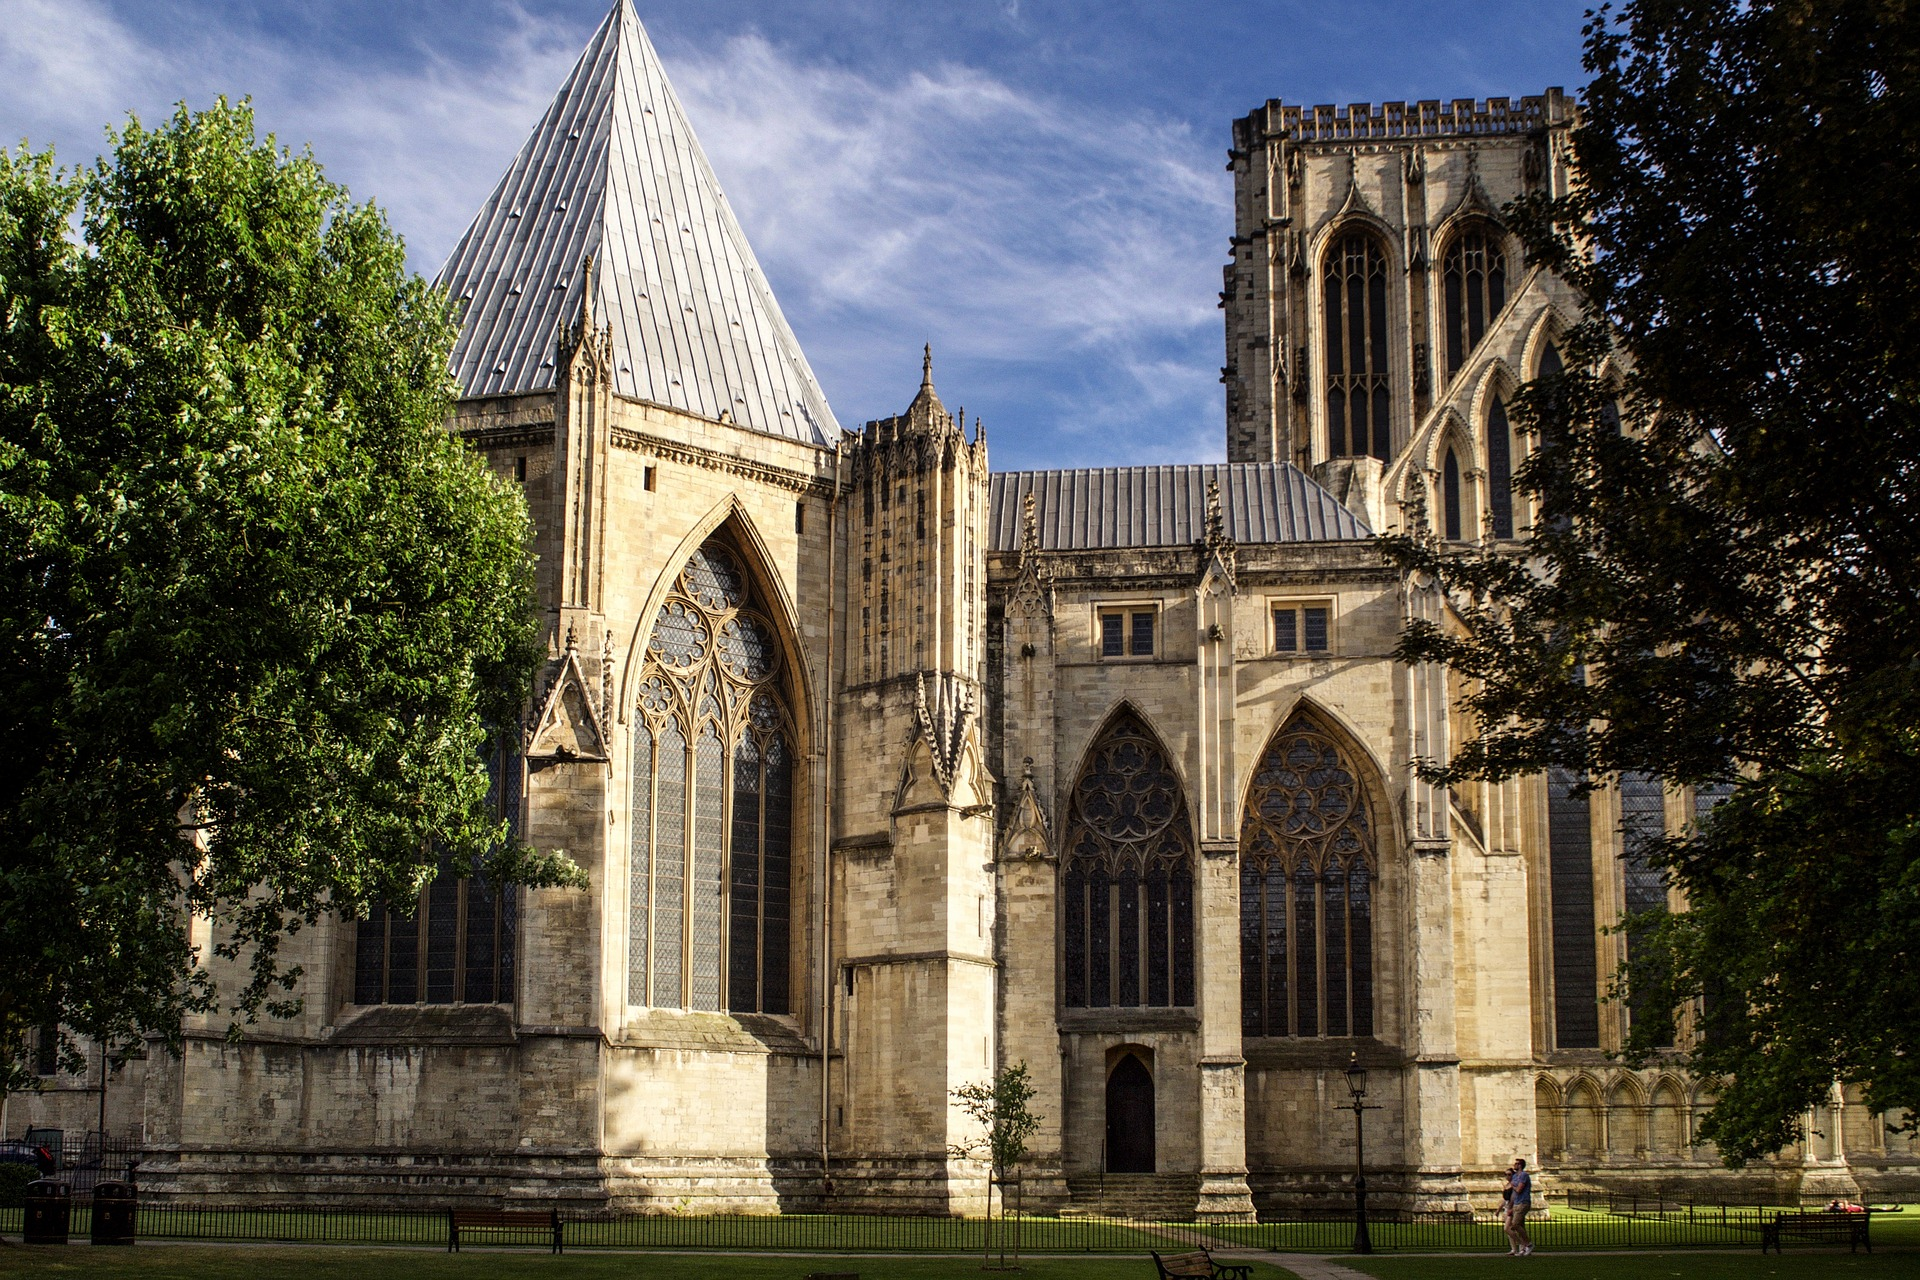 york minster side view with trees